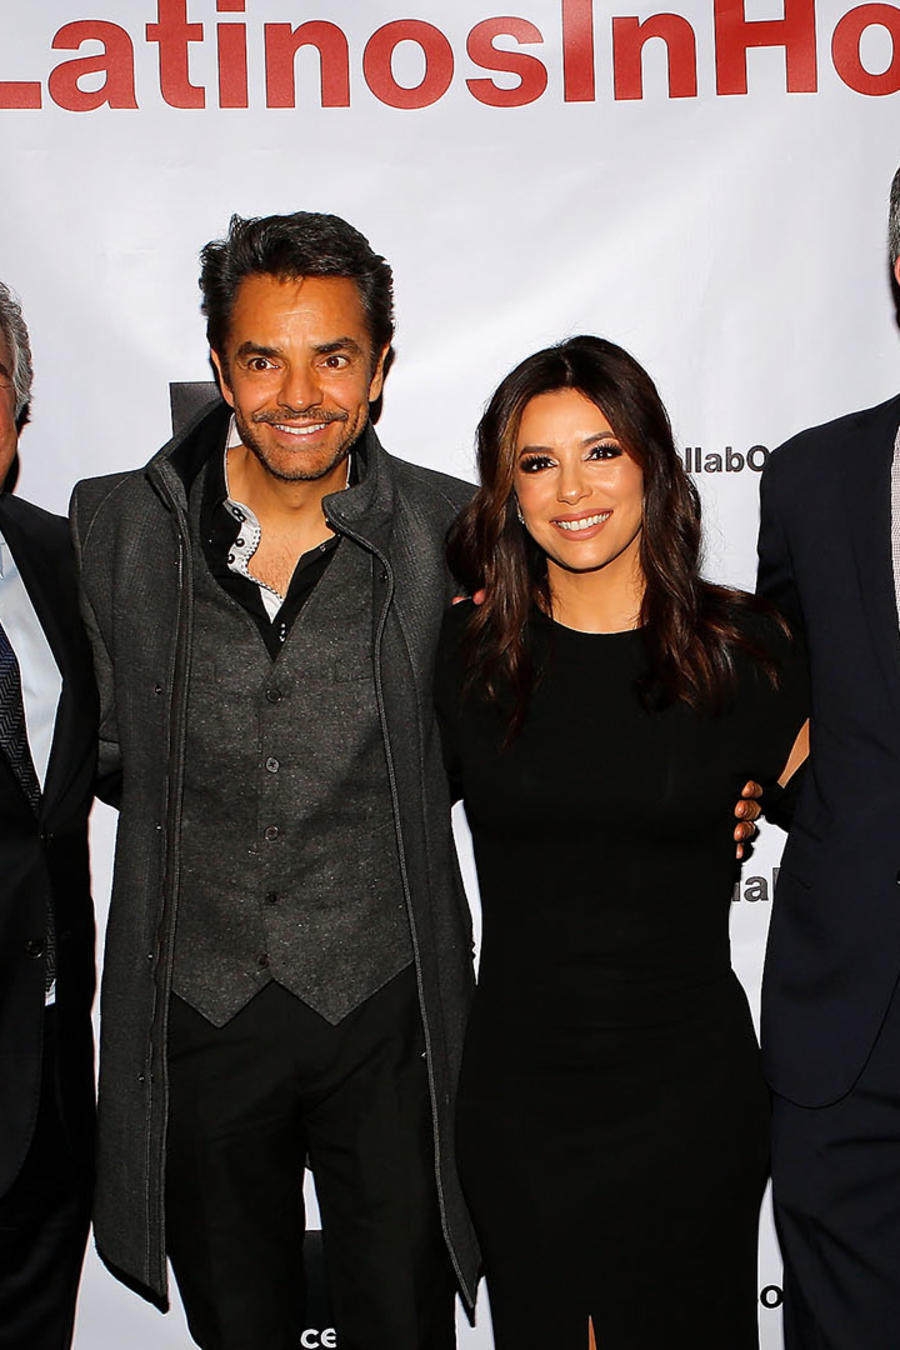 LA Mayor, Eva Longoria & More Entertainment Industry Leaders Launch 'LA Collab'